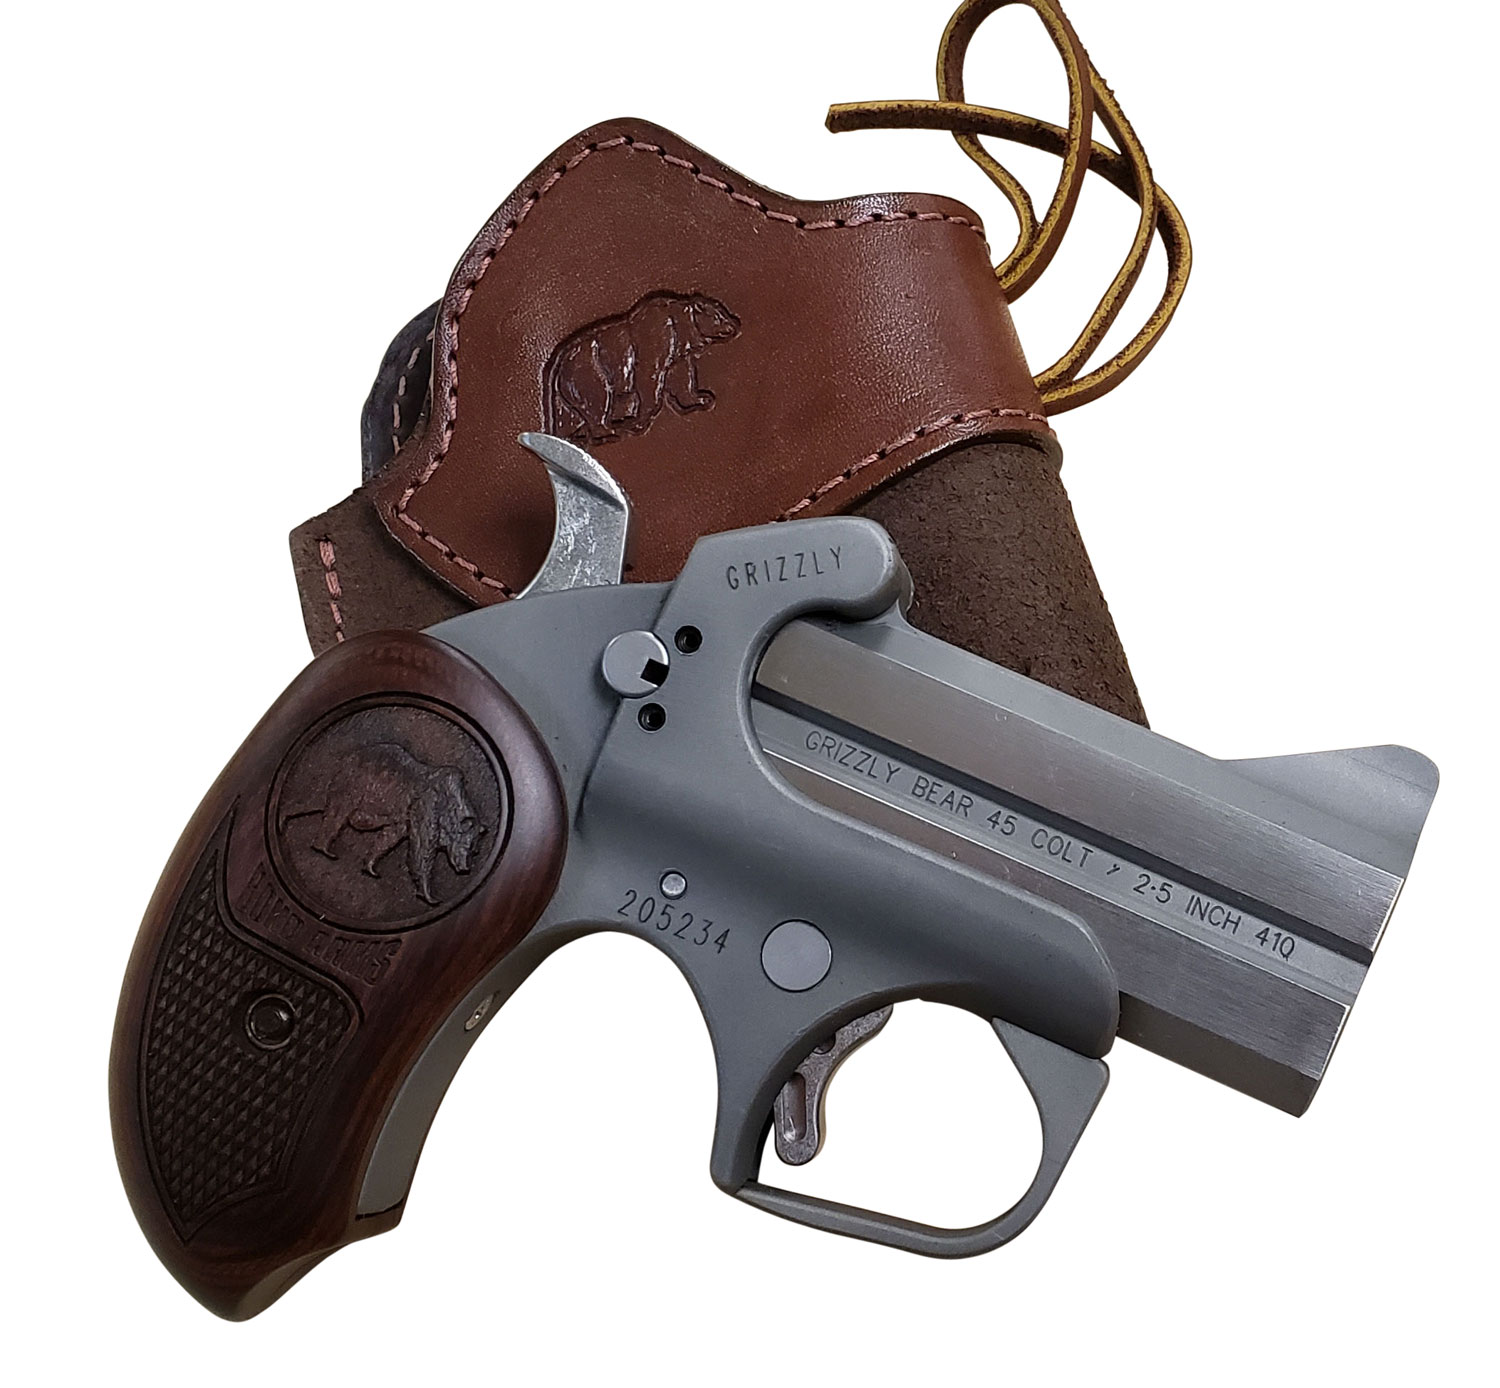 GRIZZLY 45LC/410 SS 3 FS HLST - ROSEWOOD GRIPS | HOLSTER